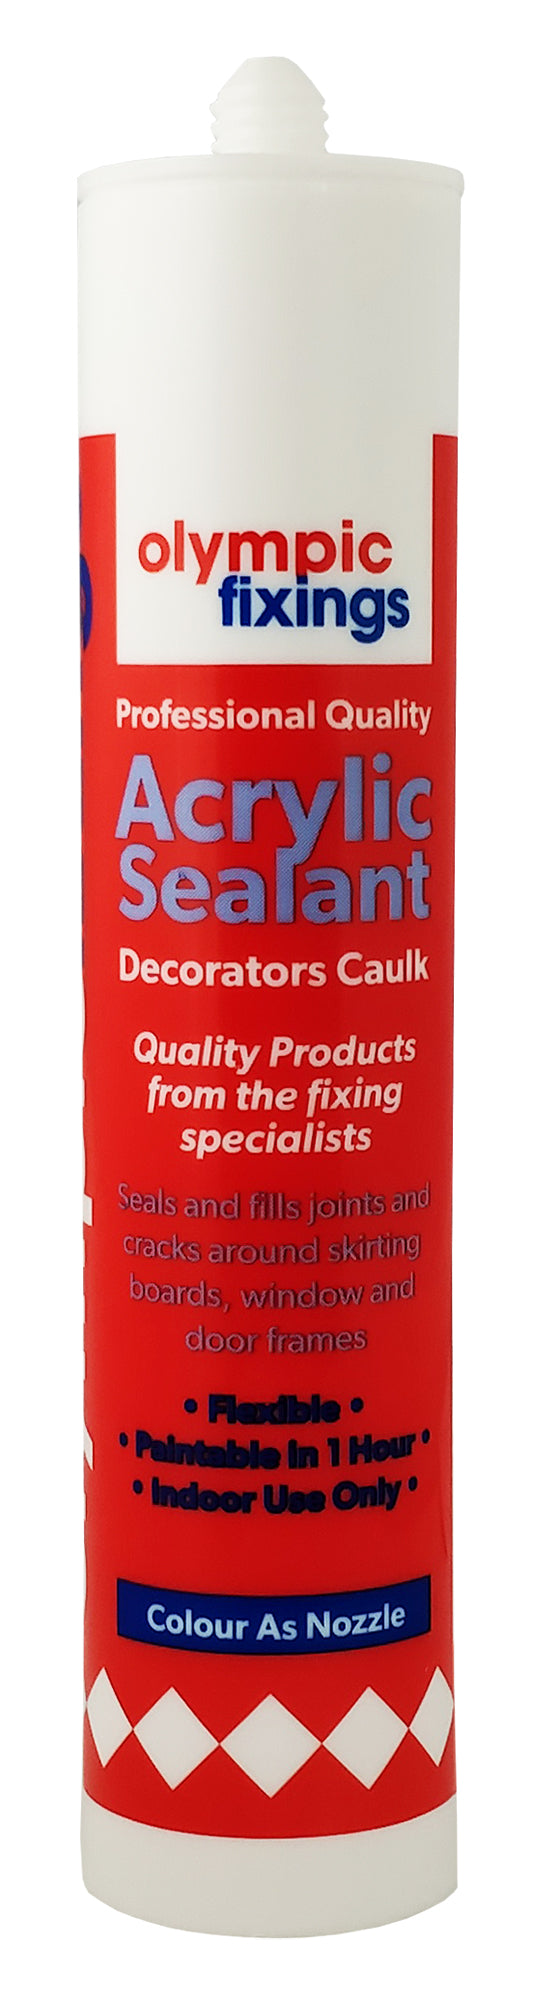 Decorators Caulk 290ml